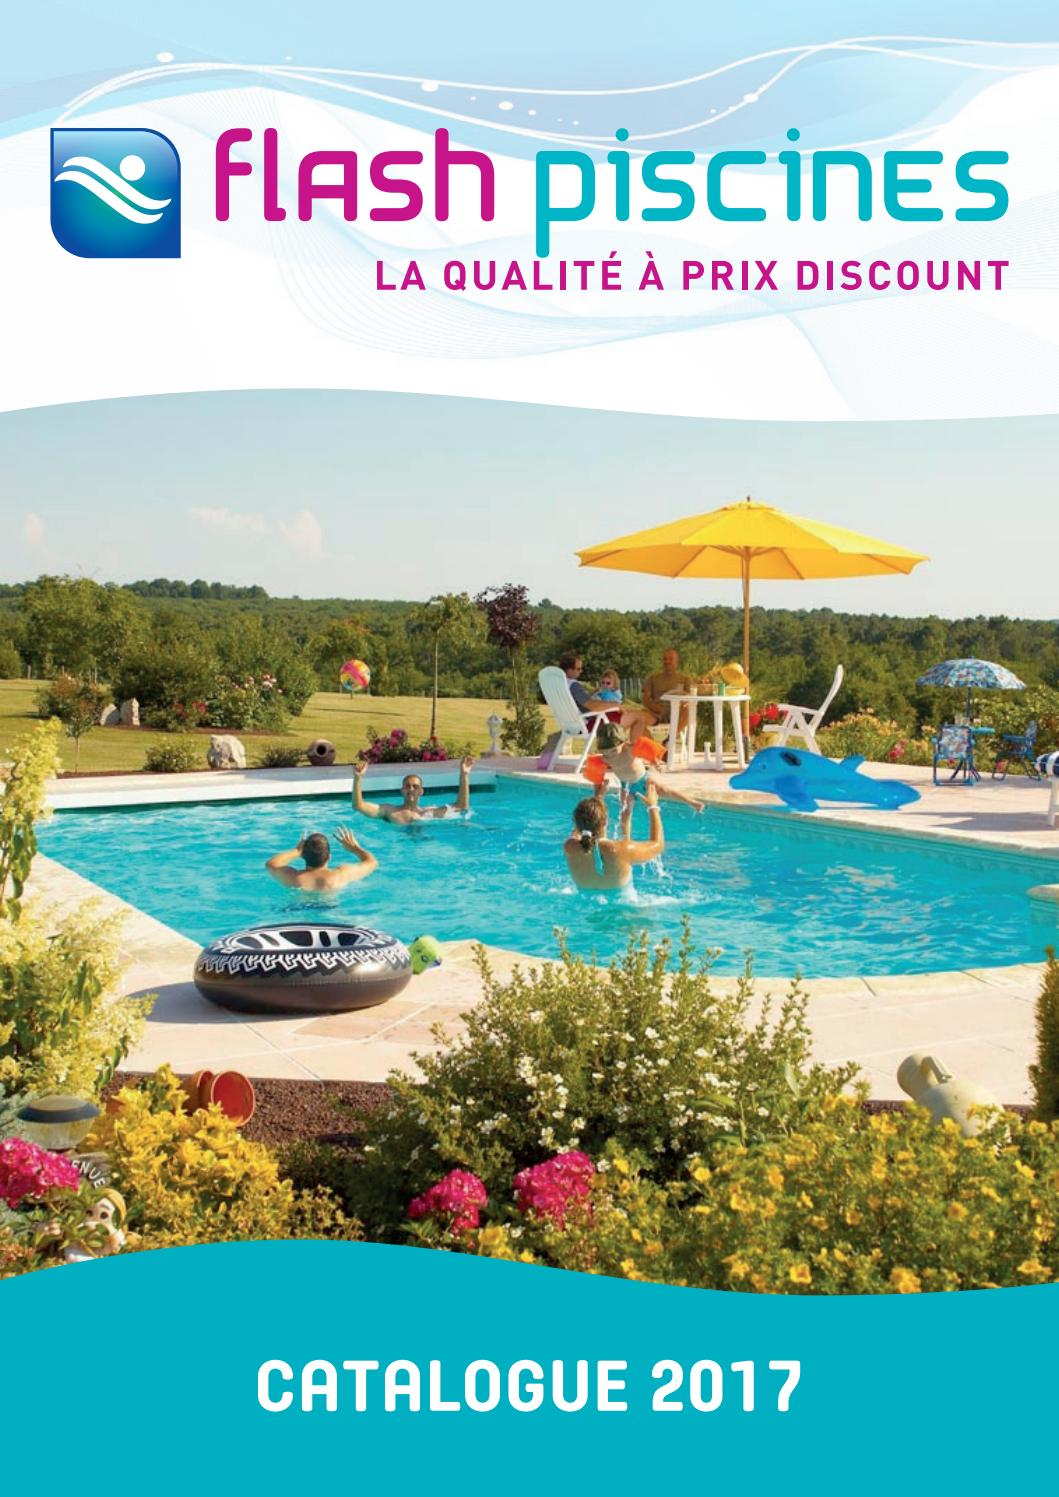 Mondial piscine flash by flash piscine issuu for Mondial piscine